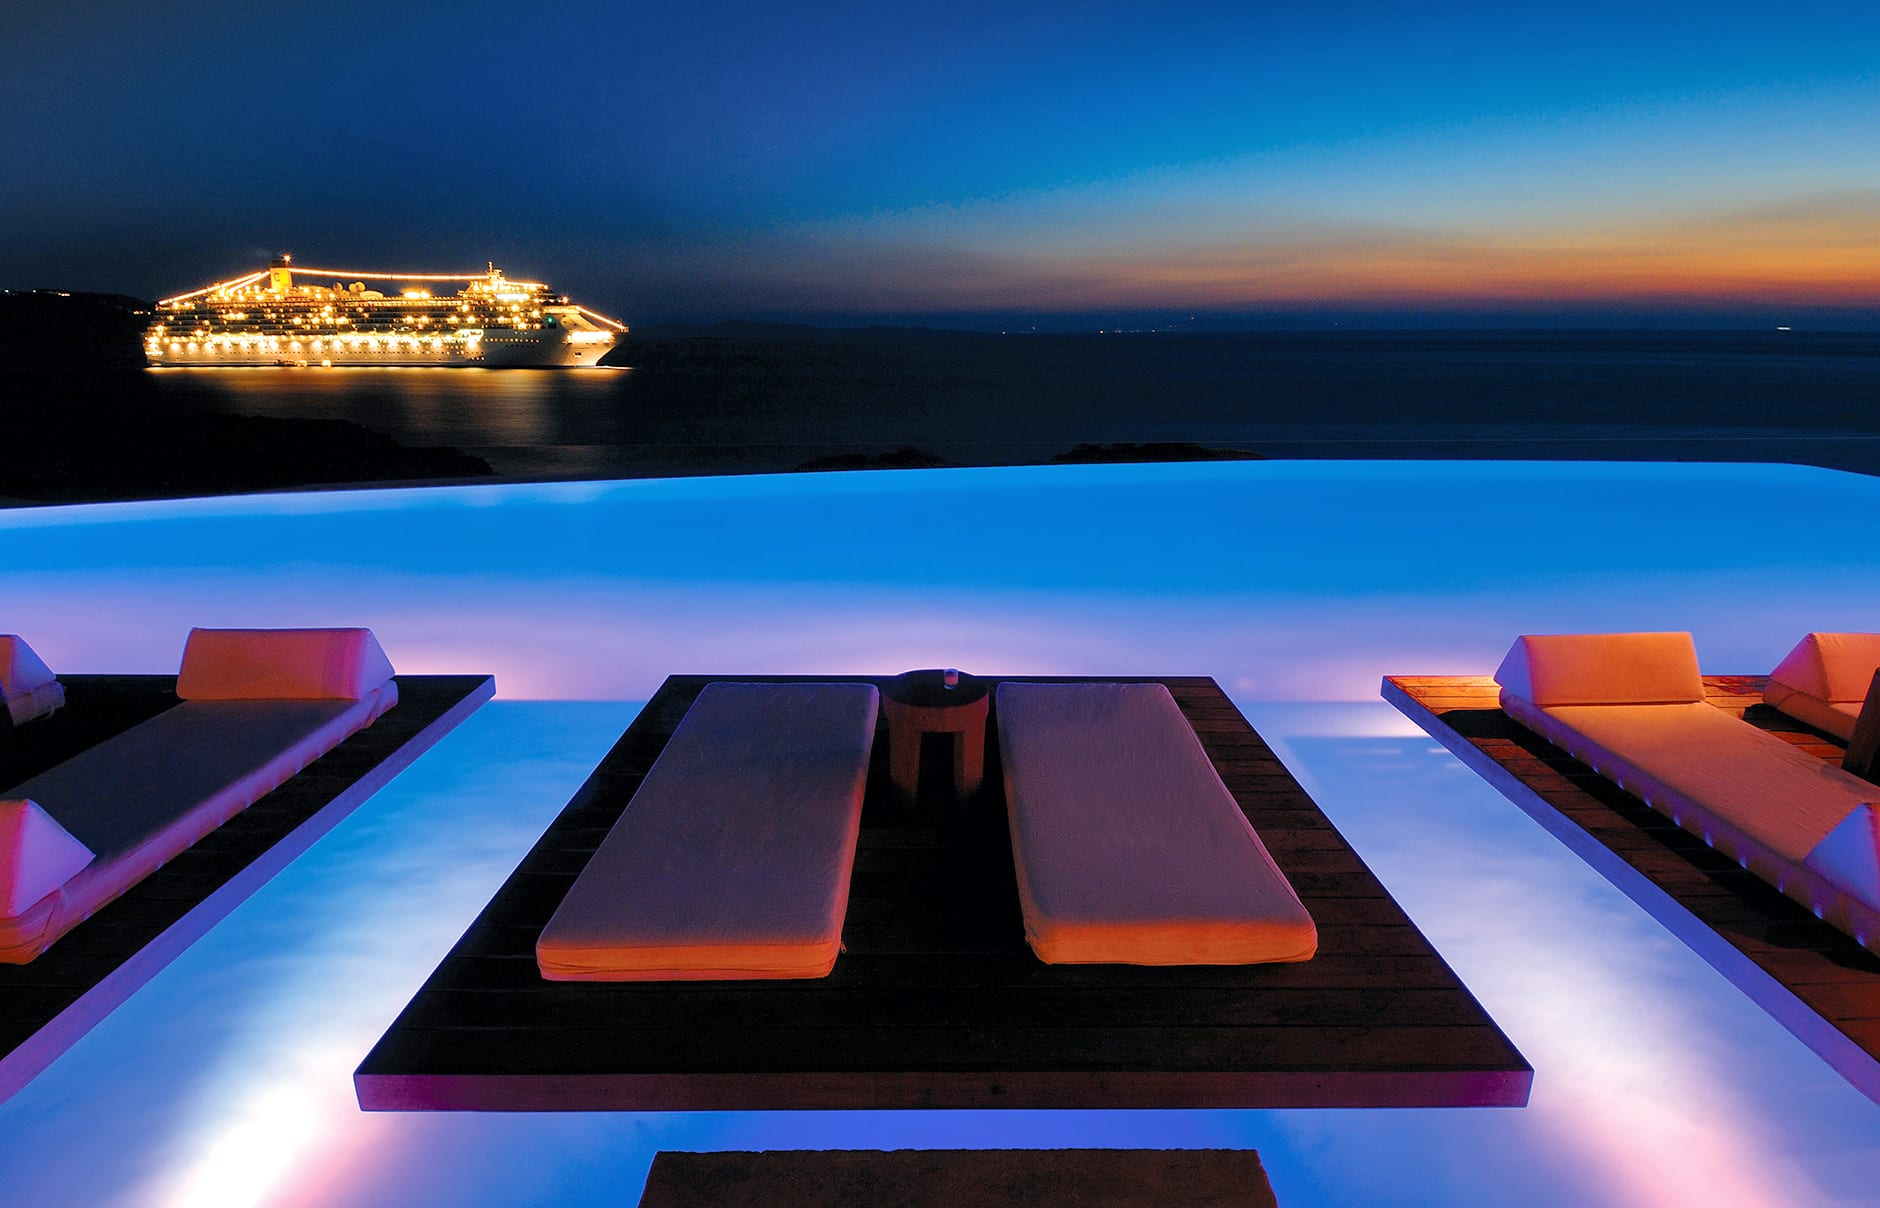 Pool at night. Cavo Tagoo Hotel. Mykonos, Greece. © Cavo Tagoo